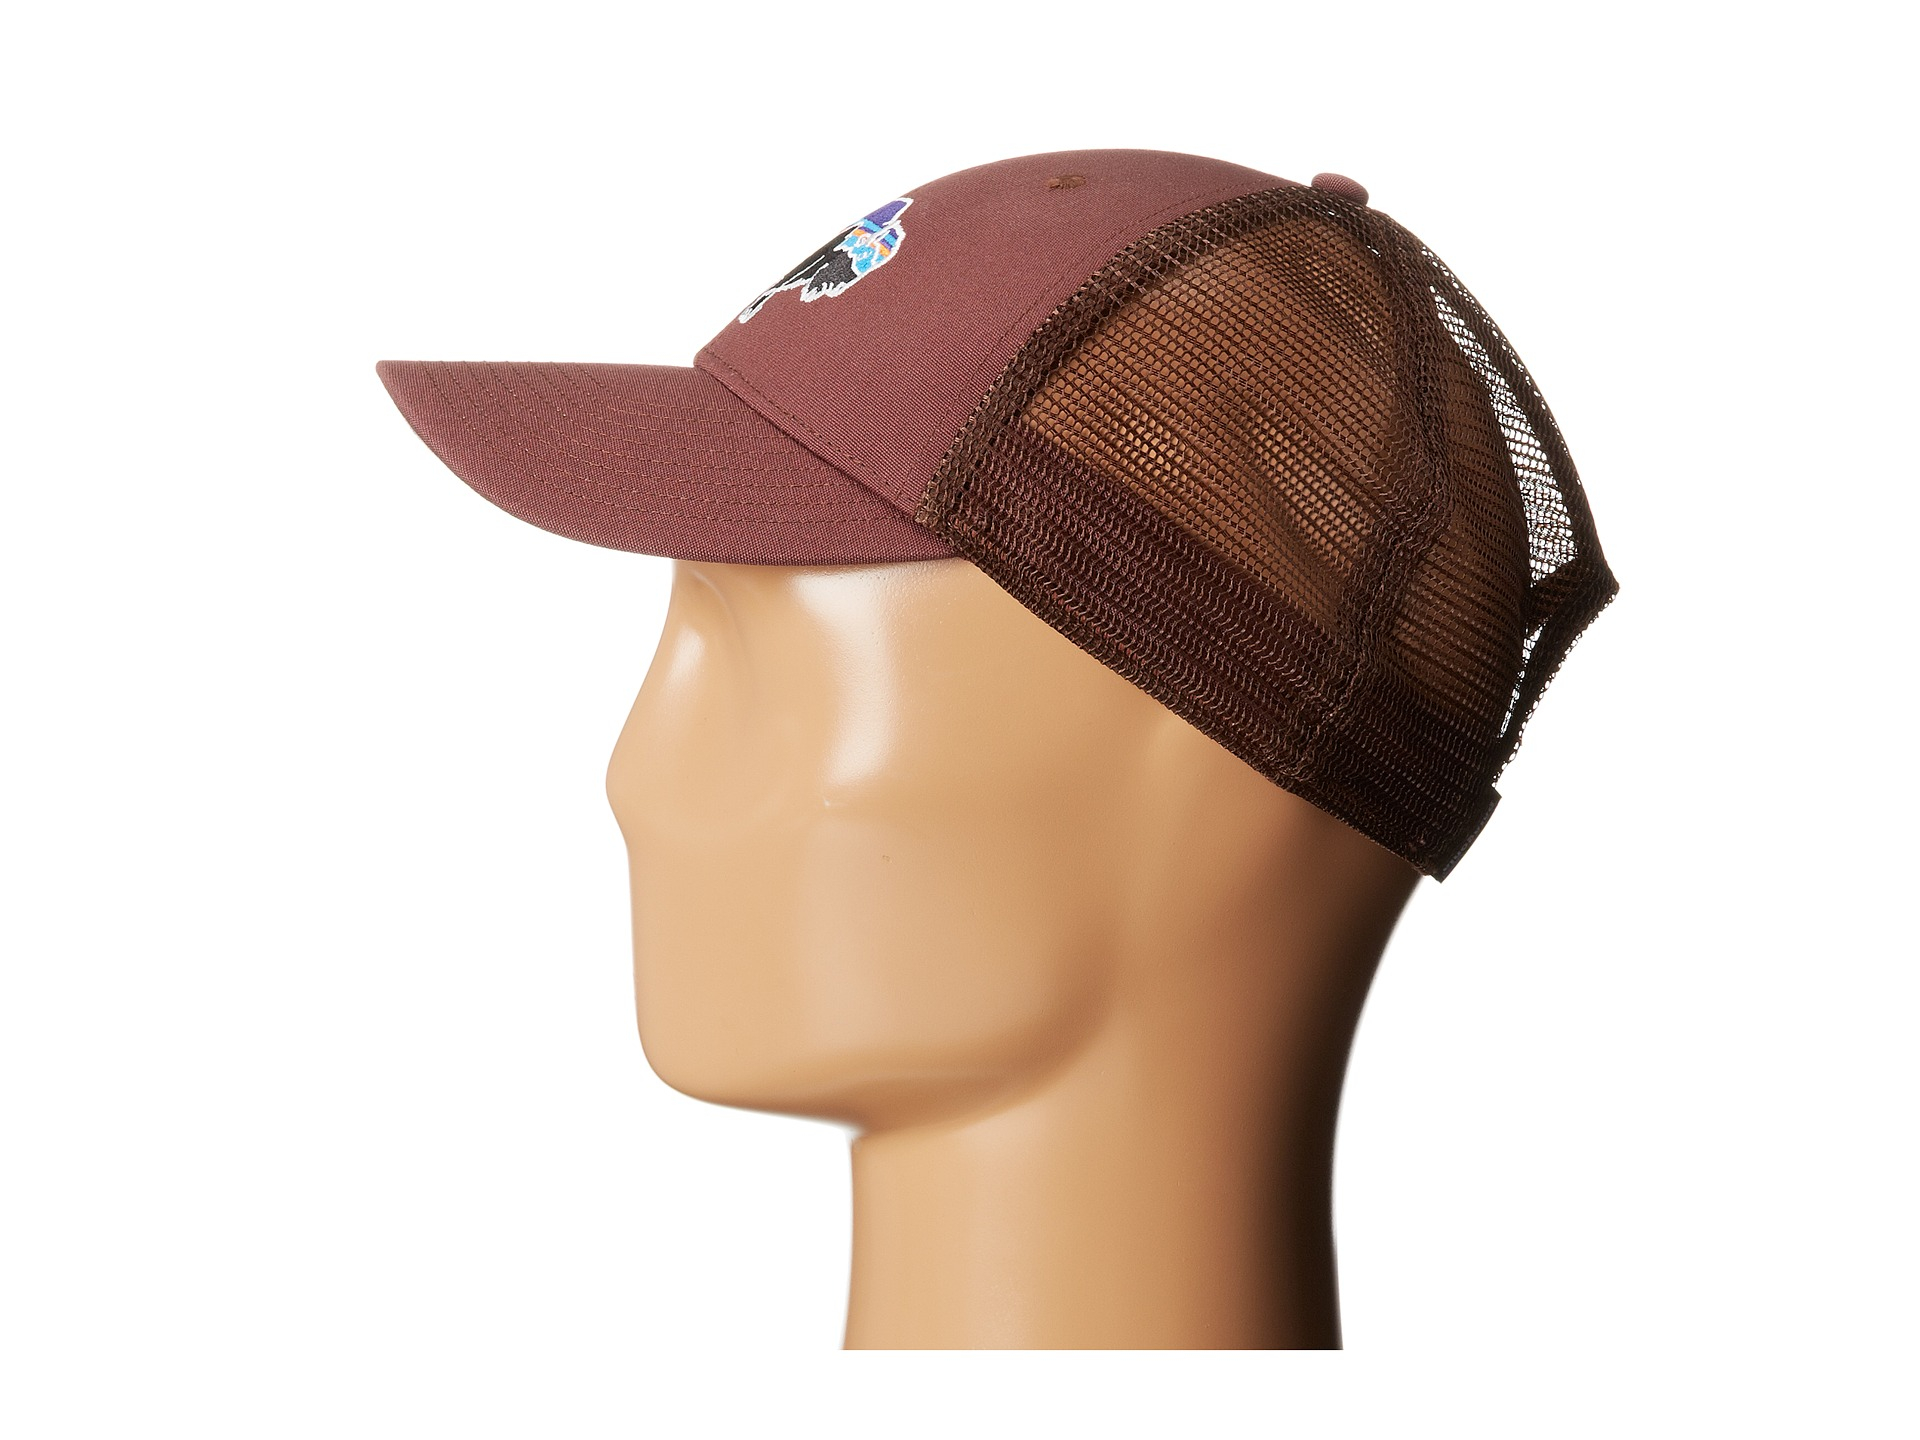 Lyst - Patagonia Fitz Roy Bison Lopro Trucker Hat in Brown 04592a1c60bc